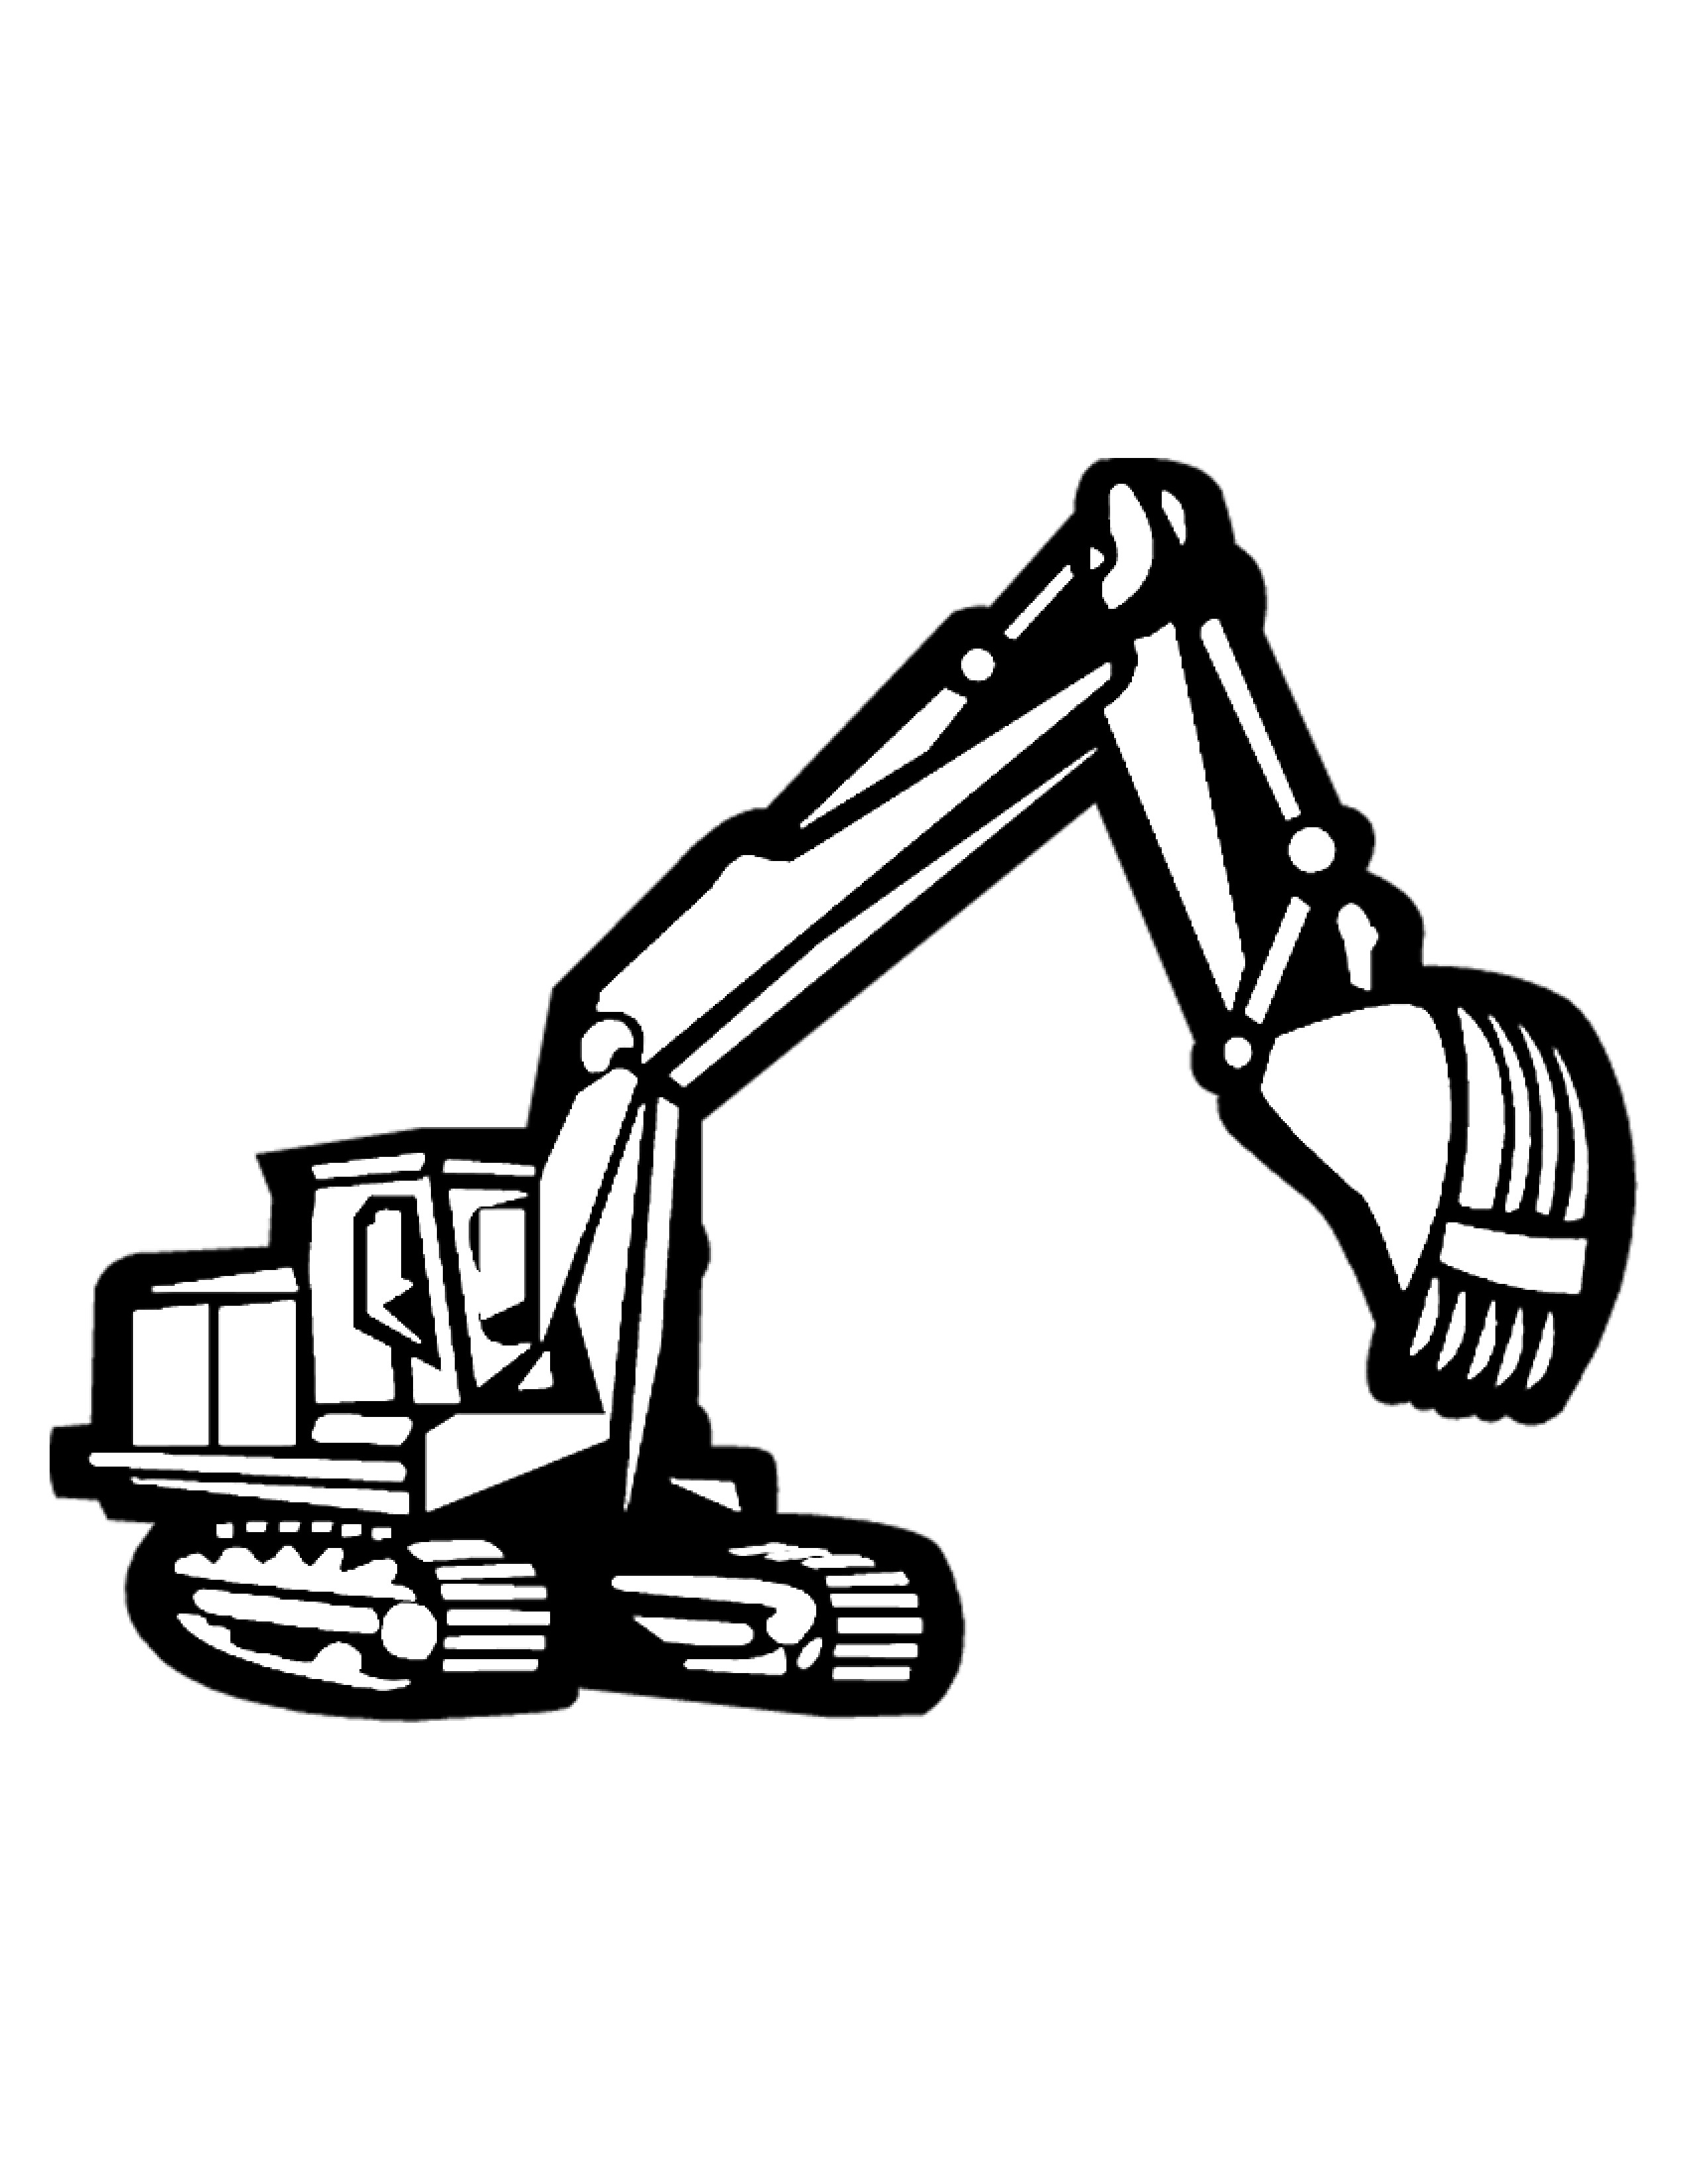 Trackhoe Clipart : trackhoe, clipart, Excavator, Clipart, Black, White,, Download, Library